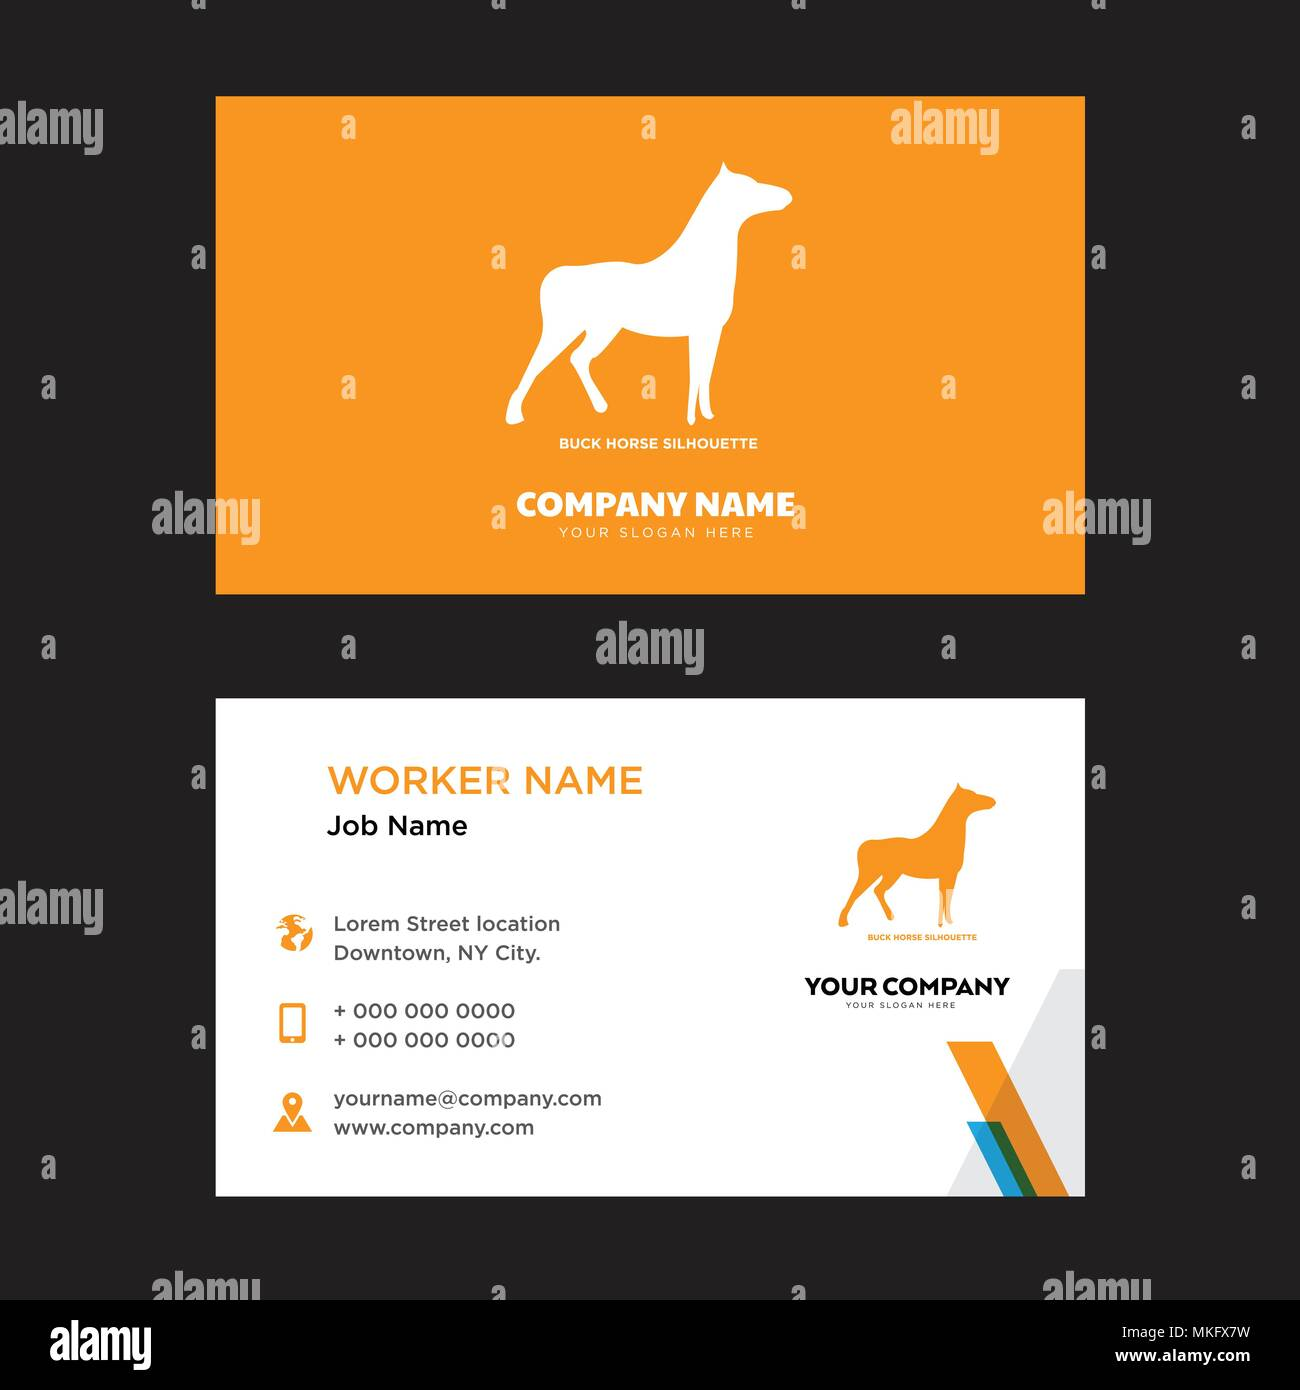 buck horse business card design template, Visiting for your company, Modern horizontal identity Card Vector - Stock Image